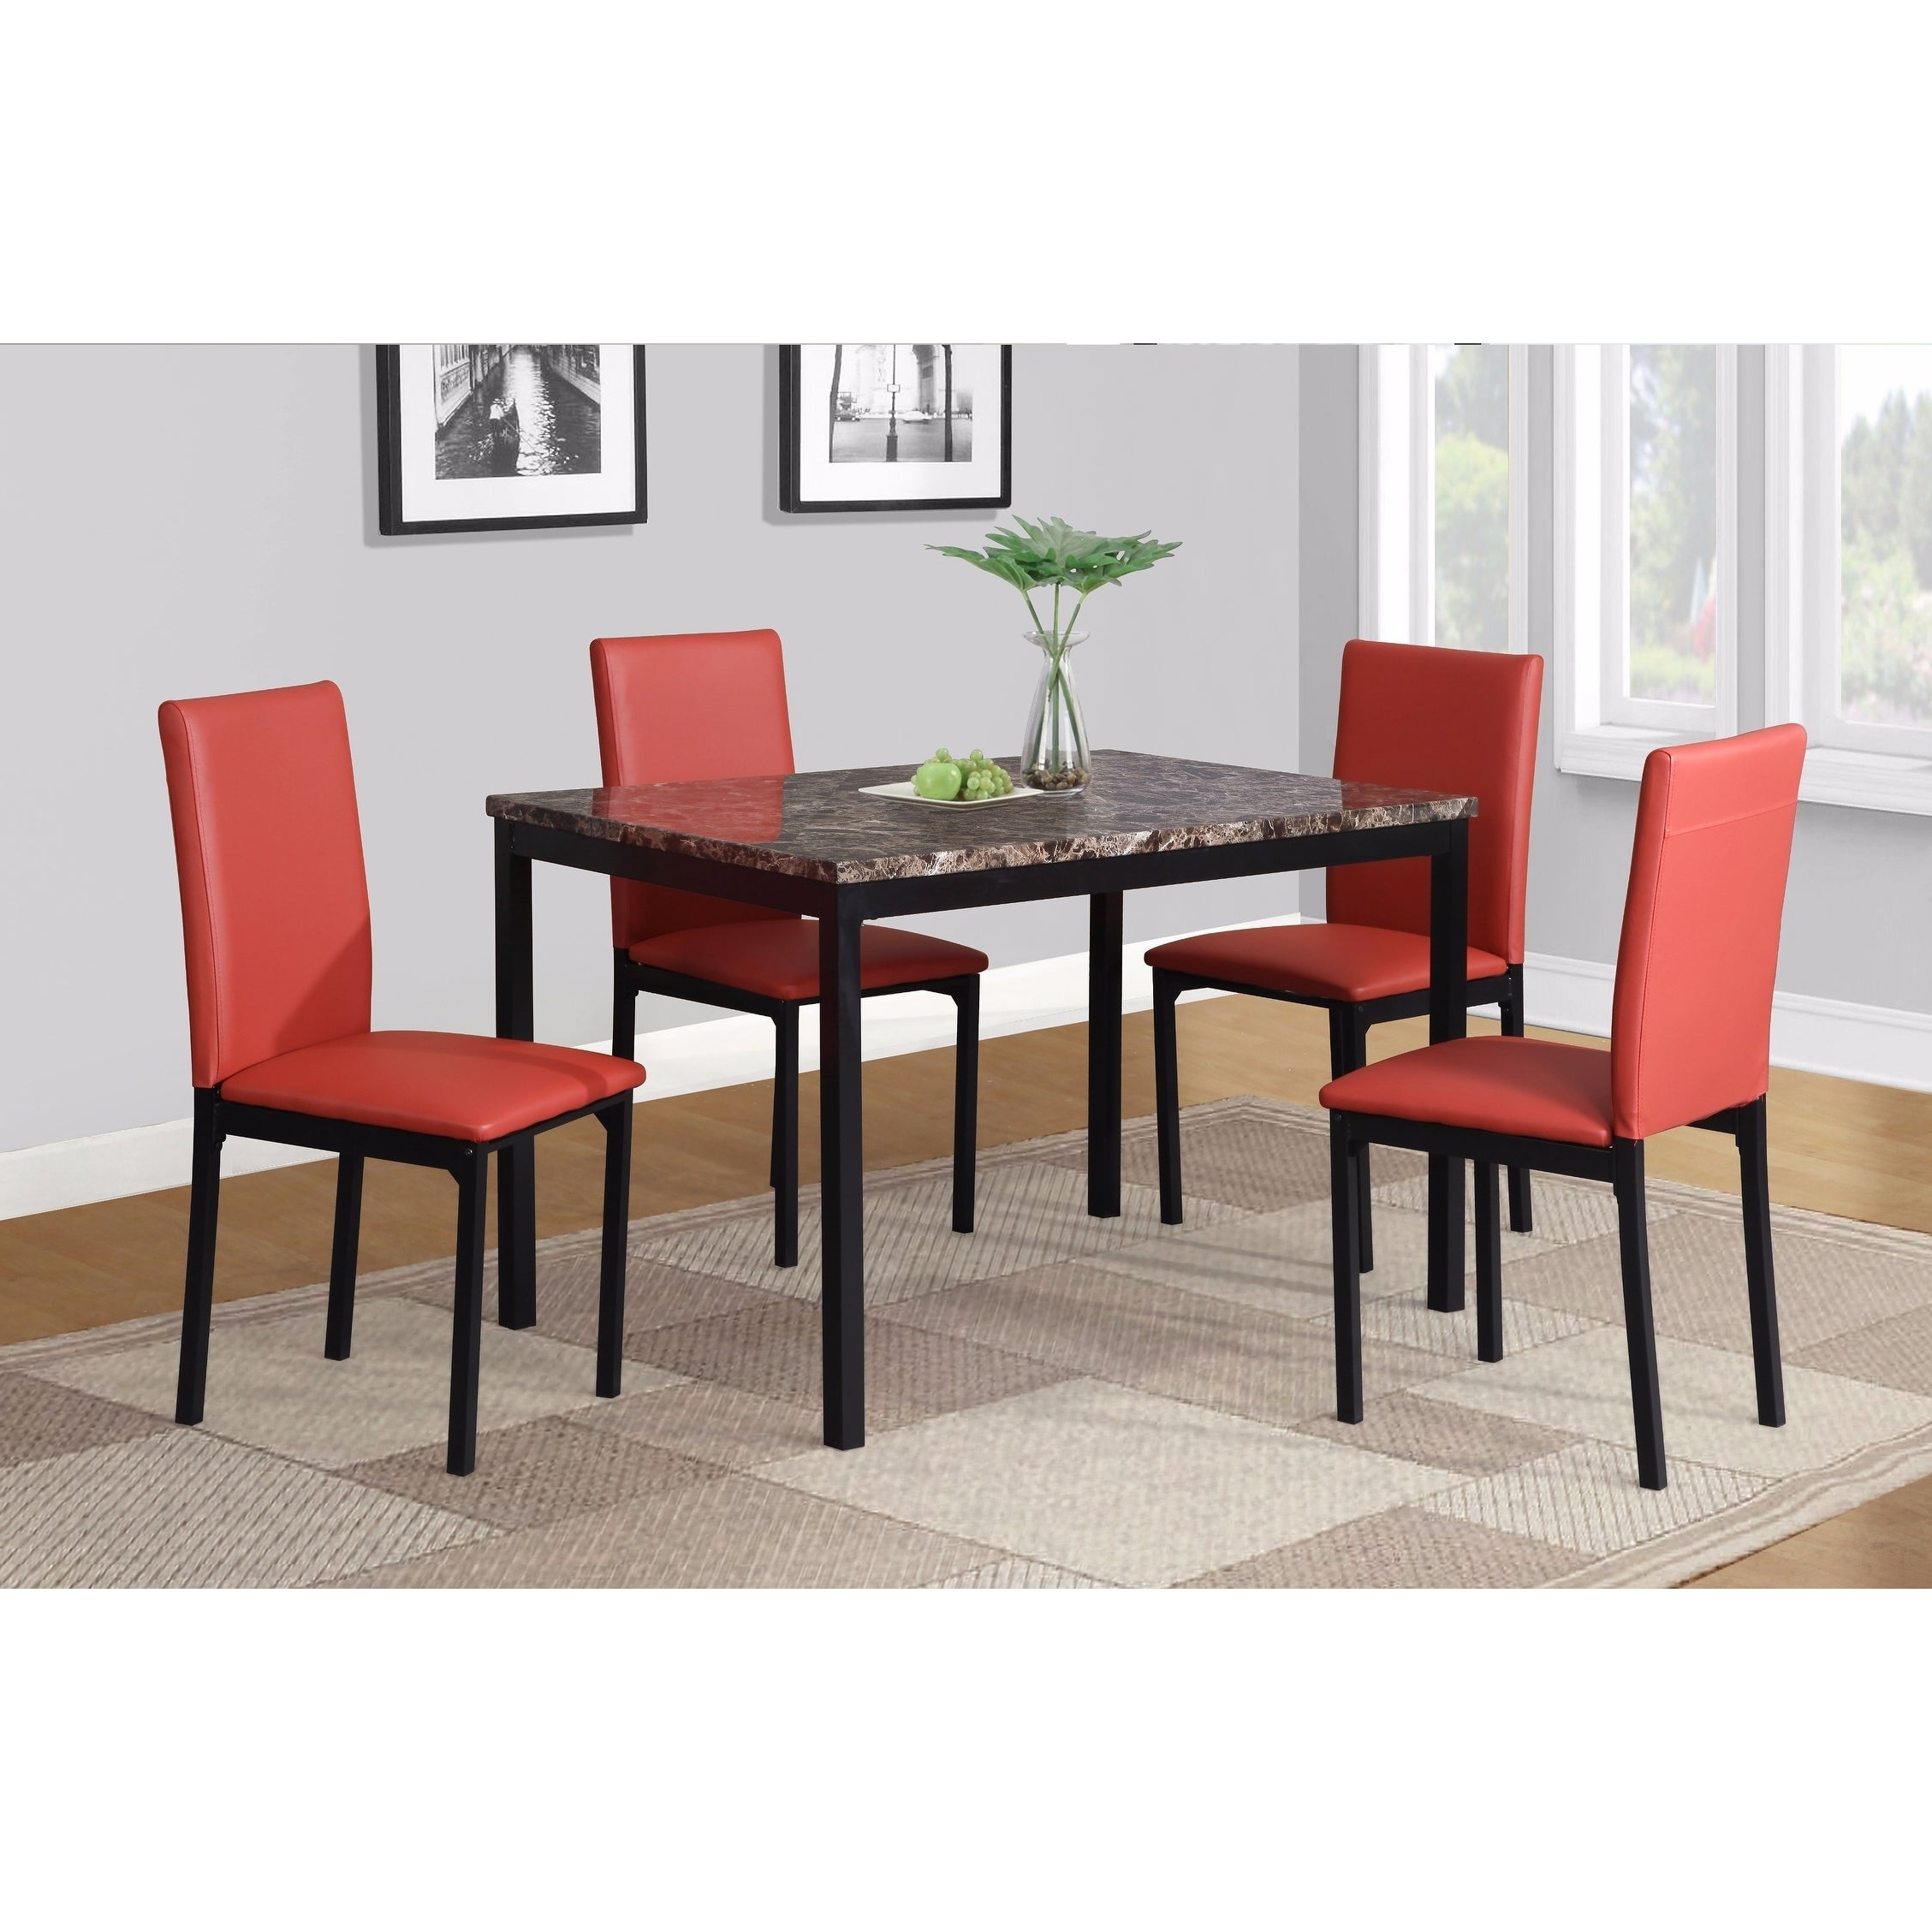 Most Up To Date Noyes Faux Leather Seat Metal Frame Black Dining Chairs, Set Of 4 Inside Noyes 5 Piece Dining Sets (View 8 of 20)